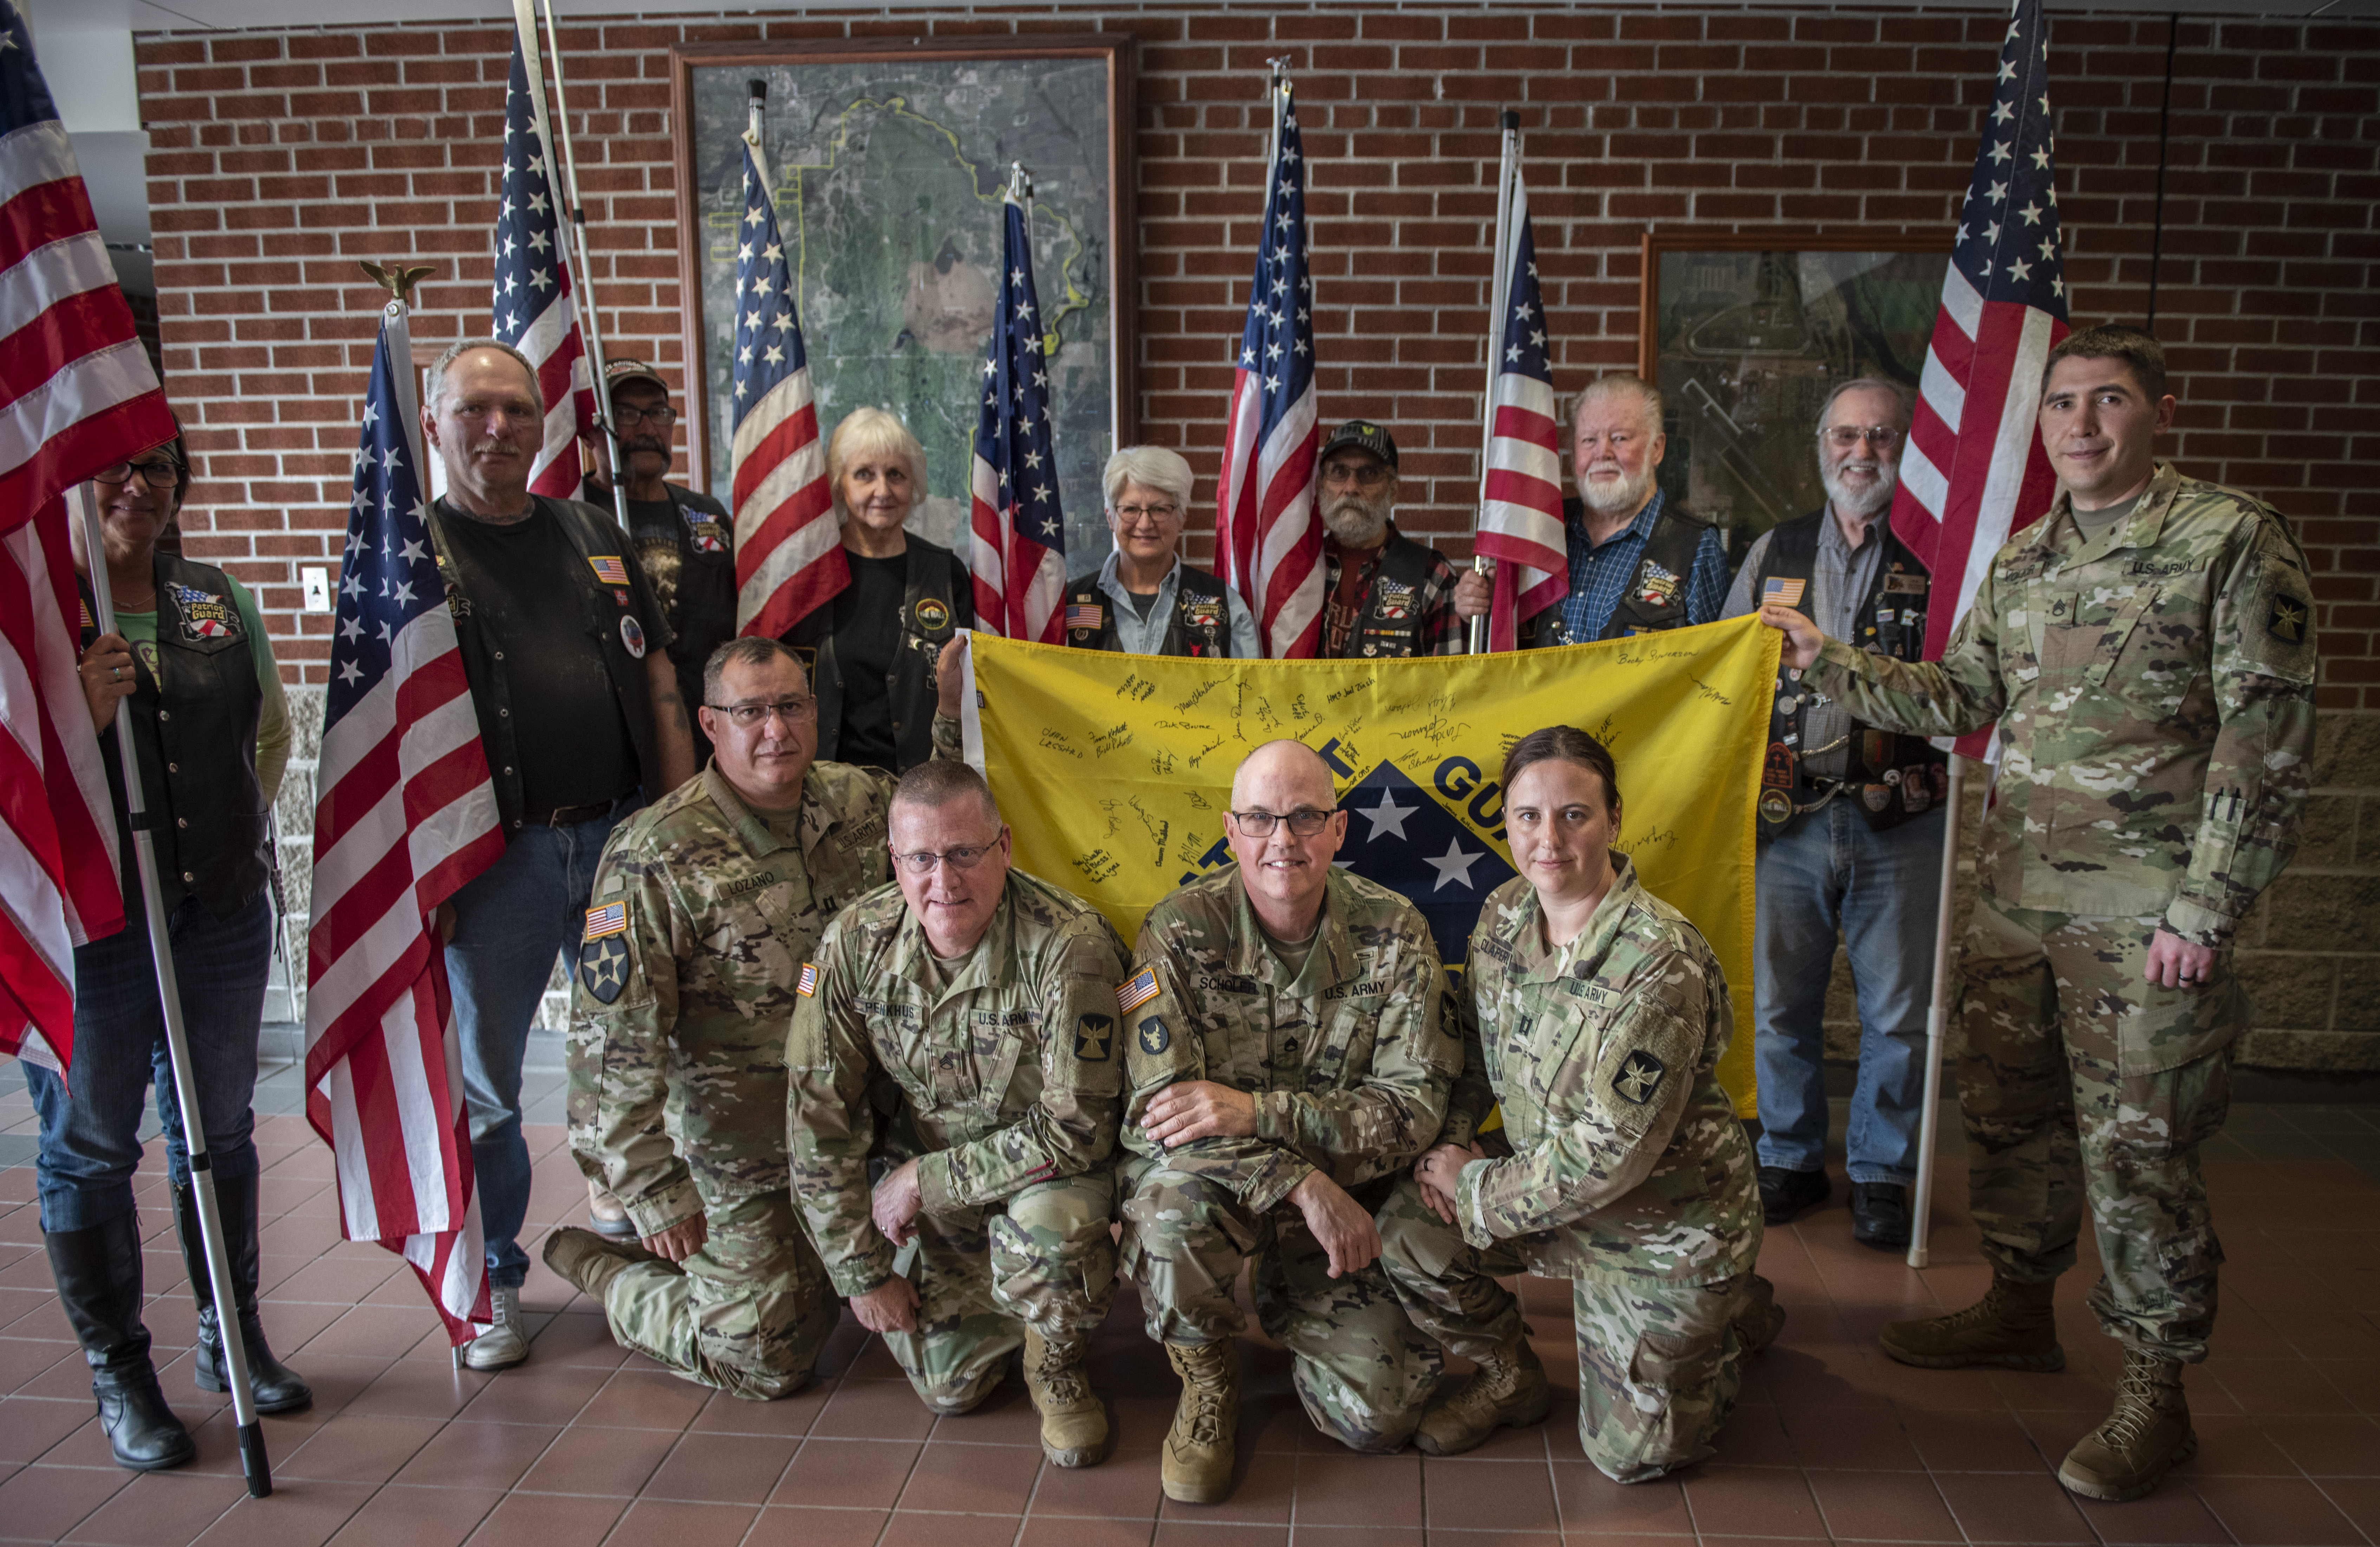 The Minnesota Patriot Guard, whose volunteers are at every mobilization event, say farewell and present a flag to the 1904th Acquisition Team on June 23 at Camp Ripley Training Center. The five-person contracting team is headed to Kuwait to plan and coordinate contract functions in the theater, and act as contract officer representatives to ensure contracts are properly administered.